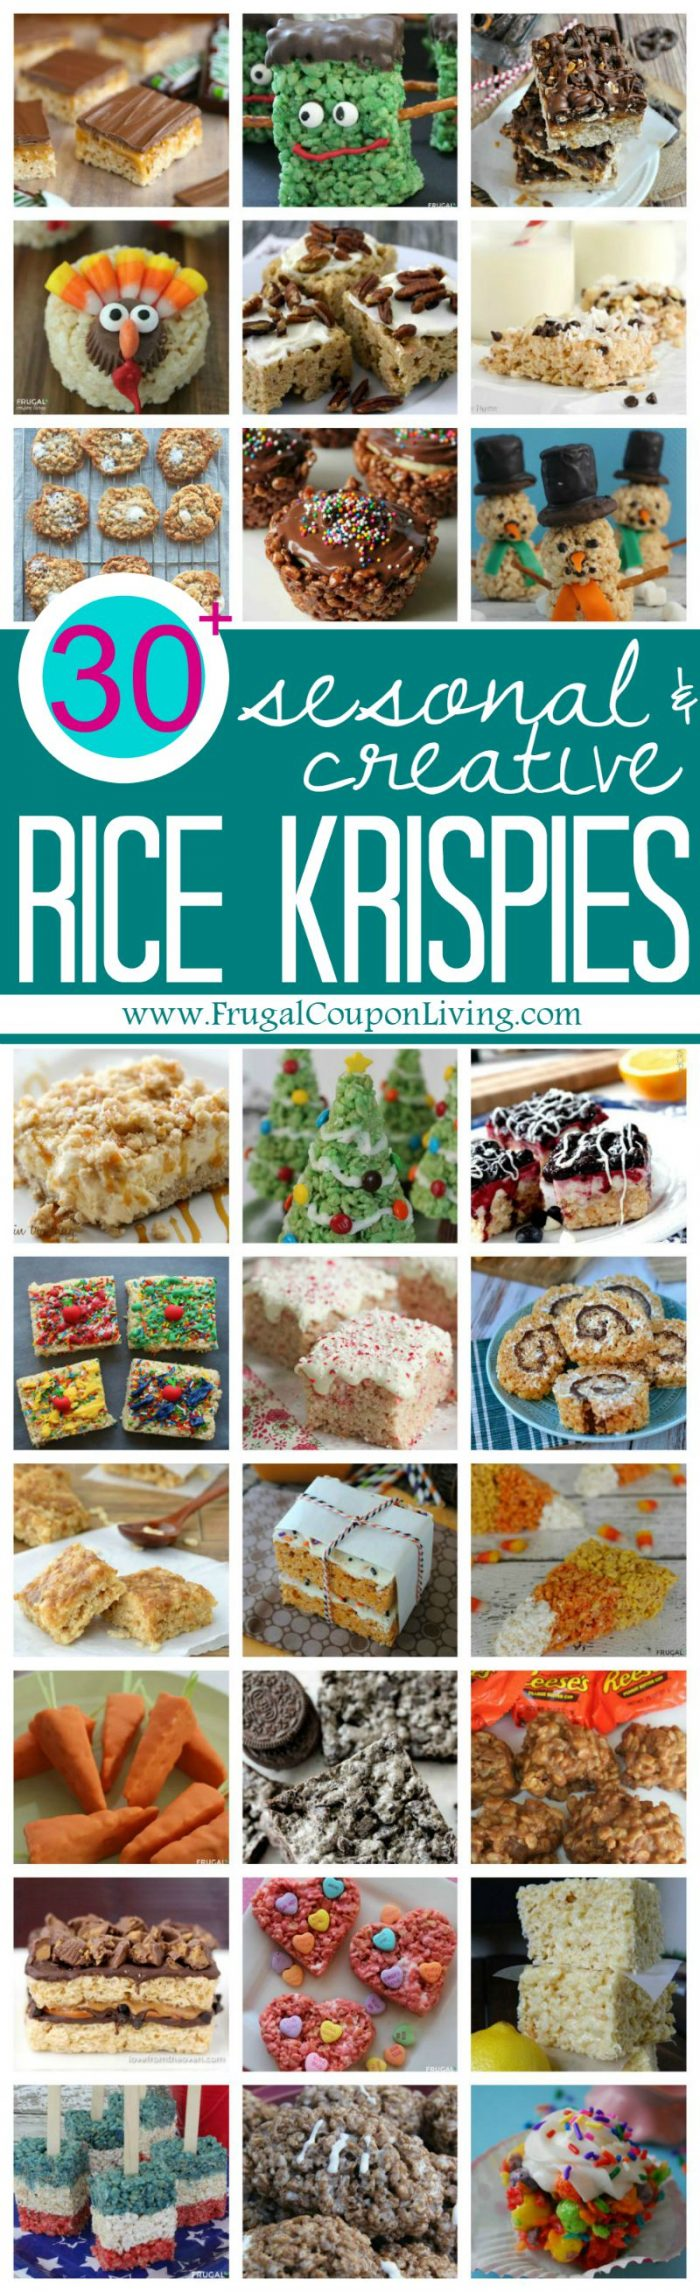 rice-krispie-treat-collage-frugal-coupon-living